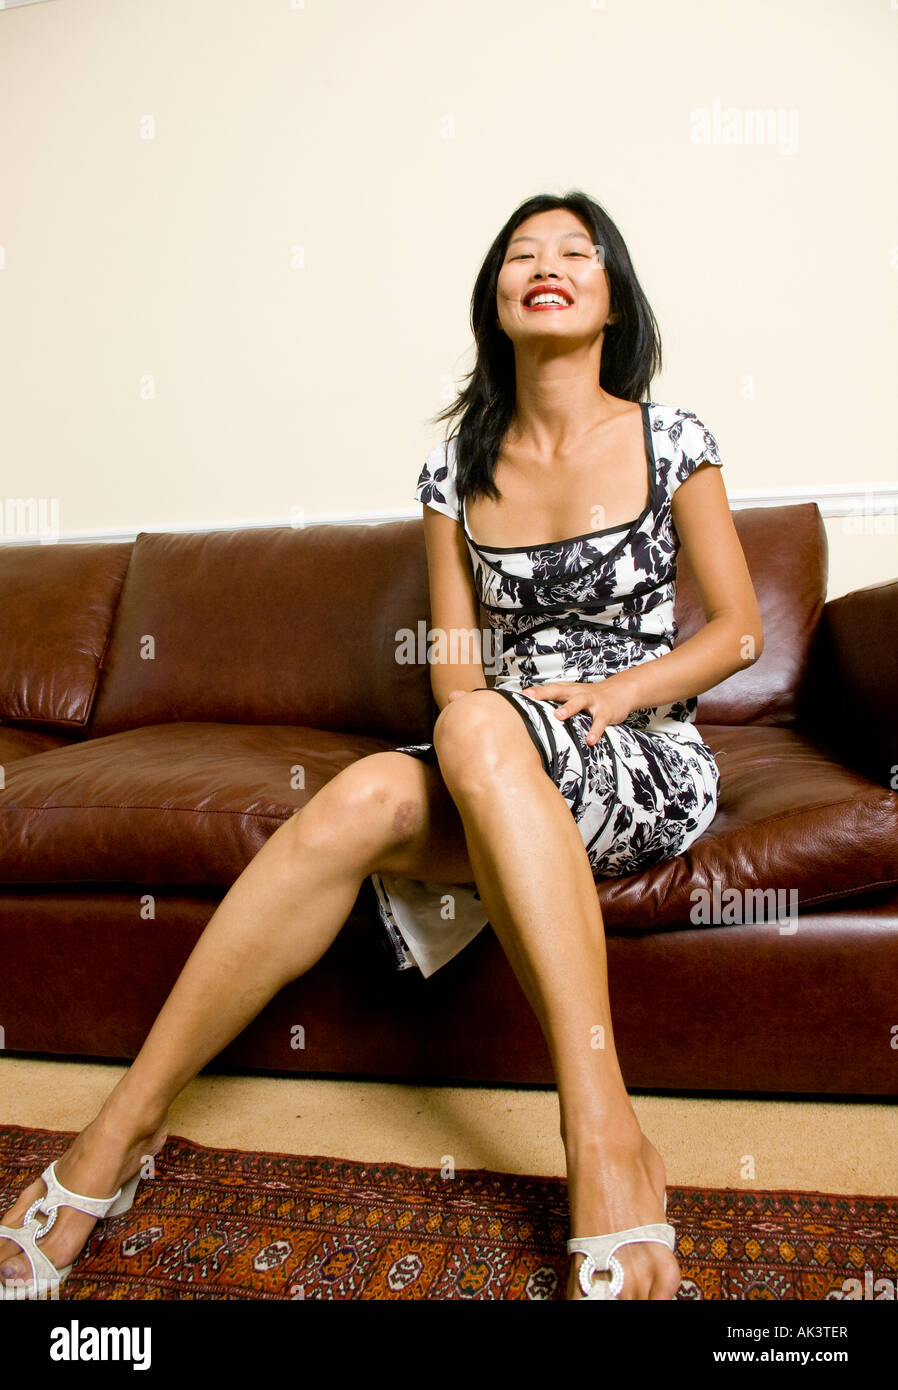 korean asian woman in formal dress sitting on leather sofa revealing